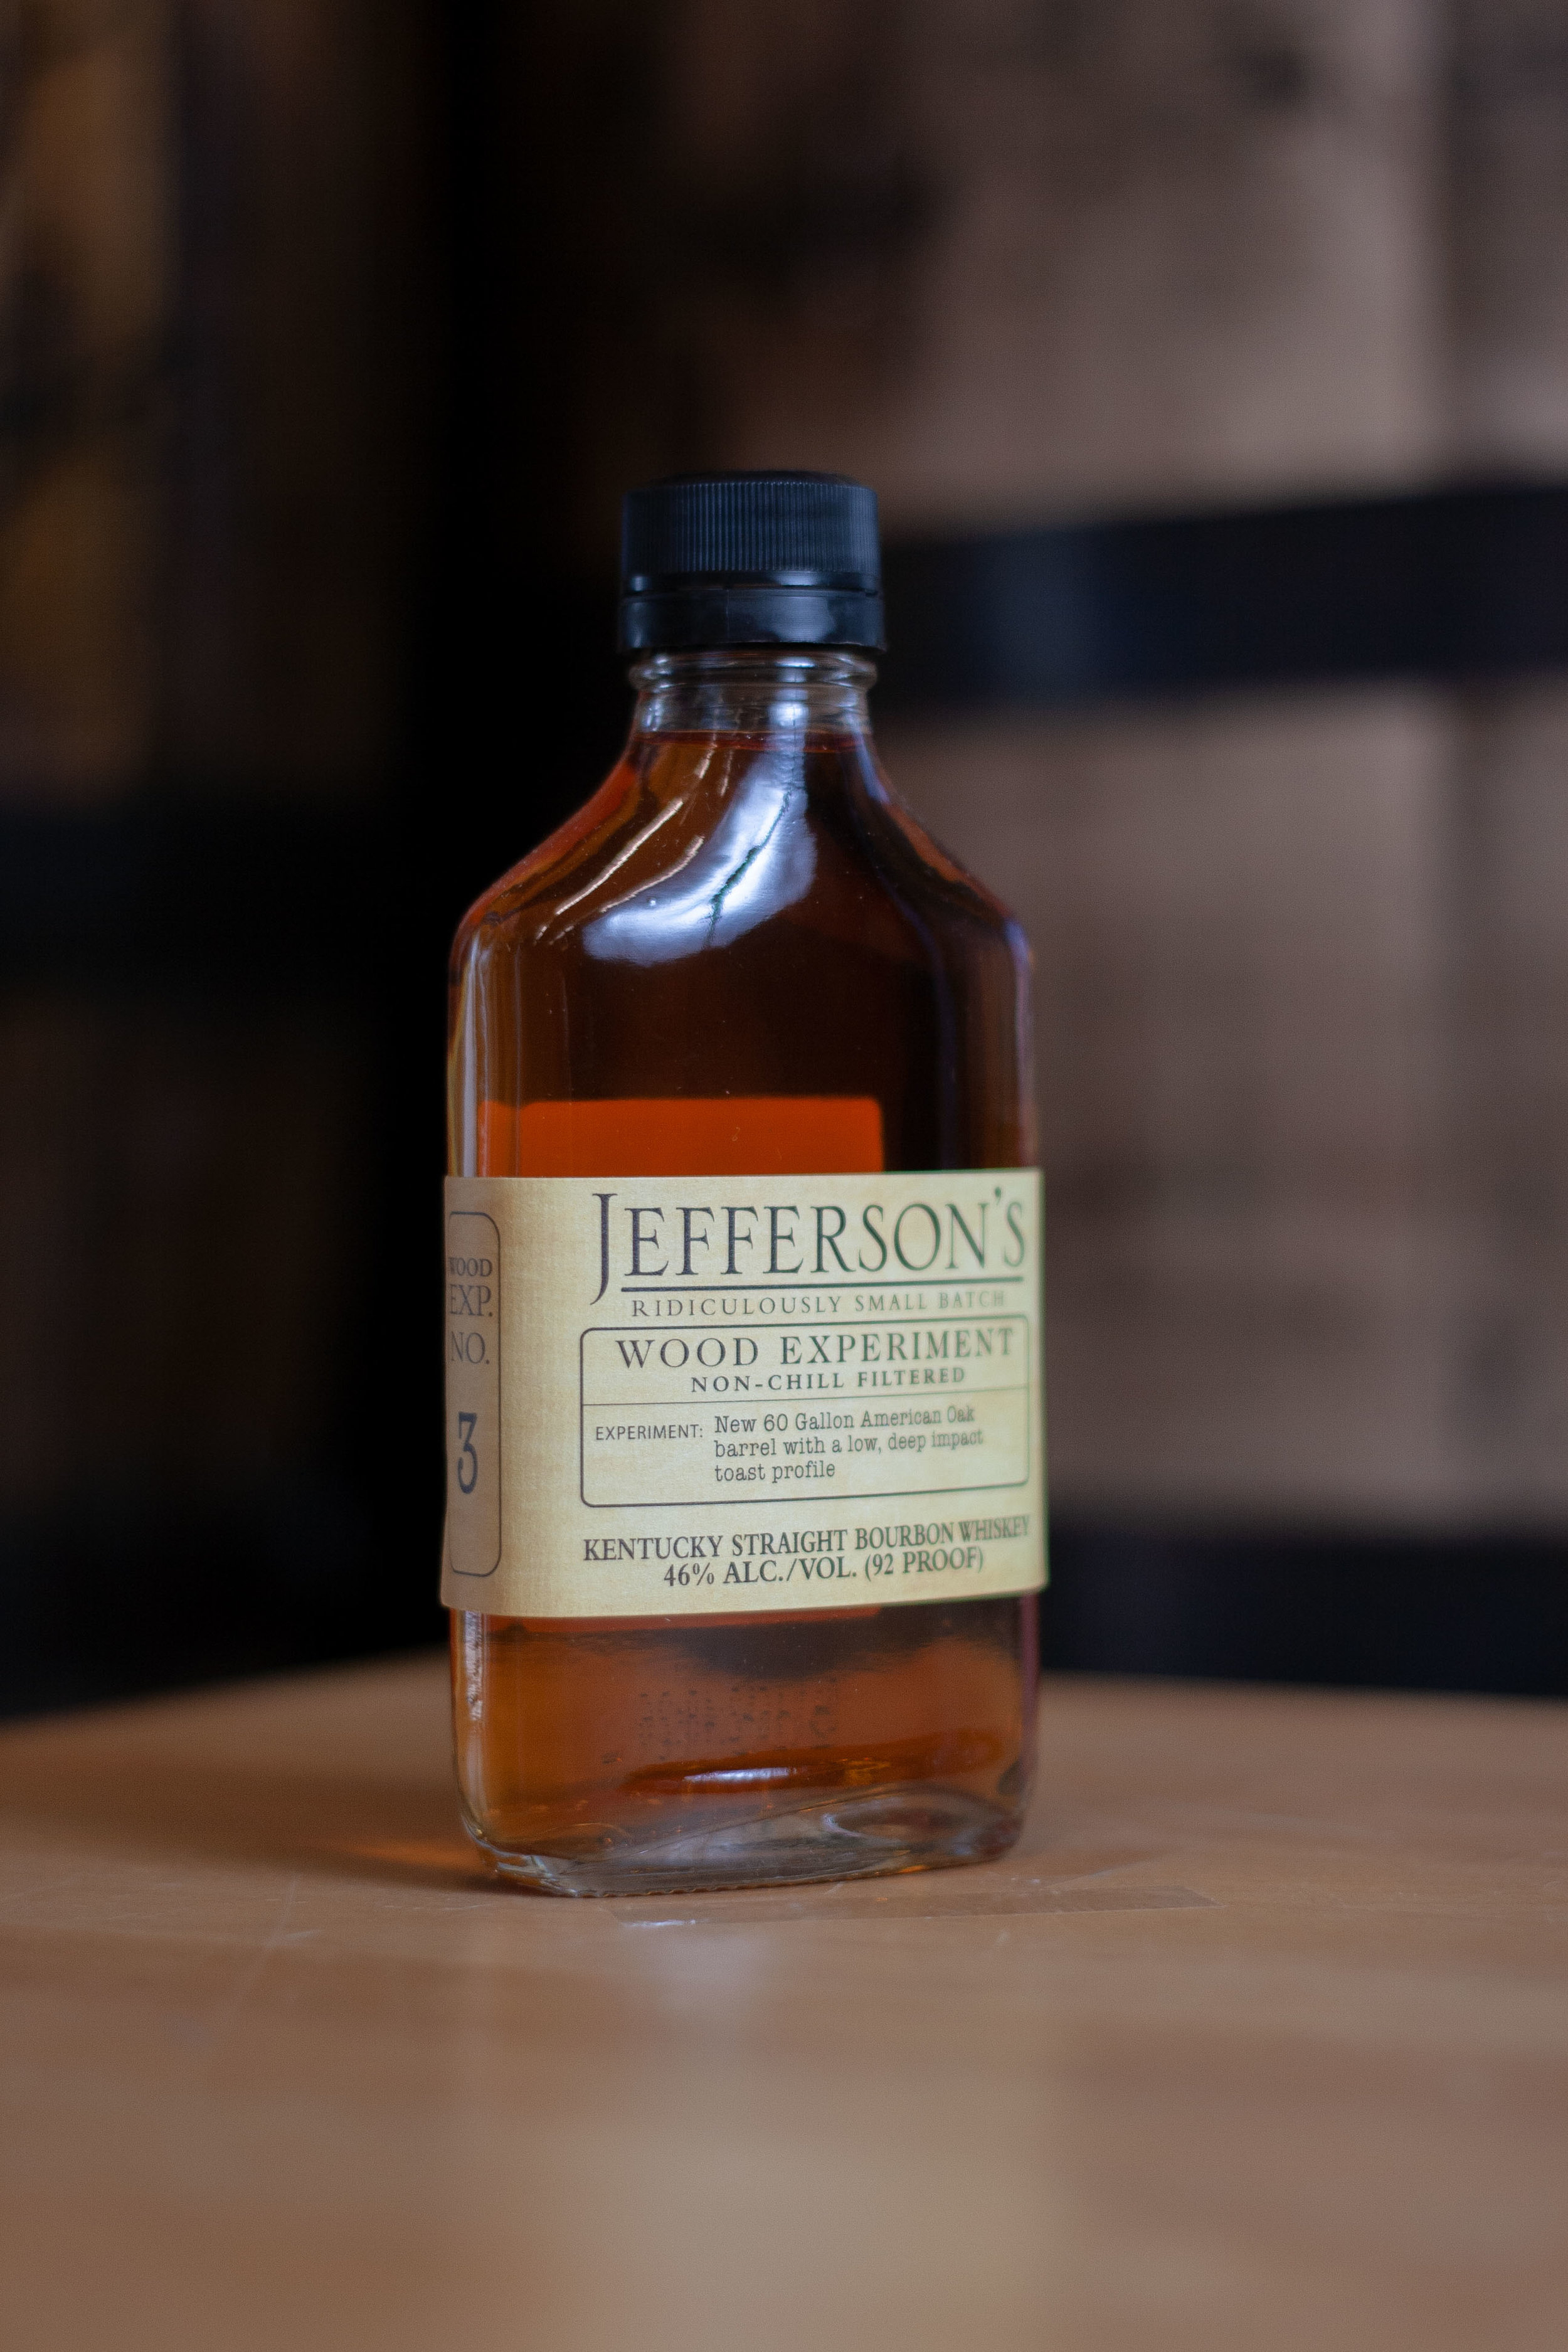 jeffersons-wood-experiment-3.jpg